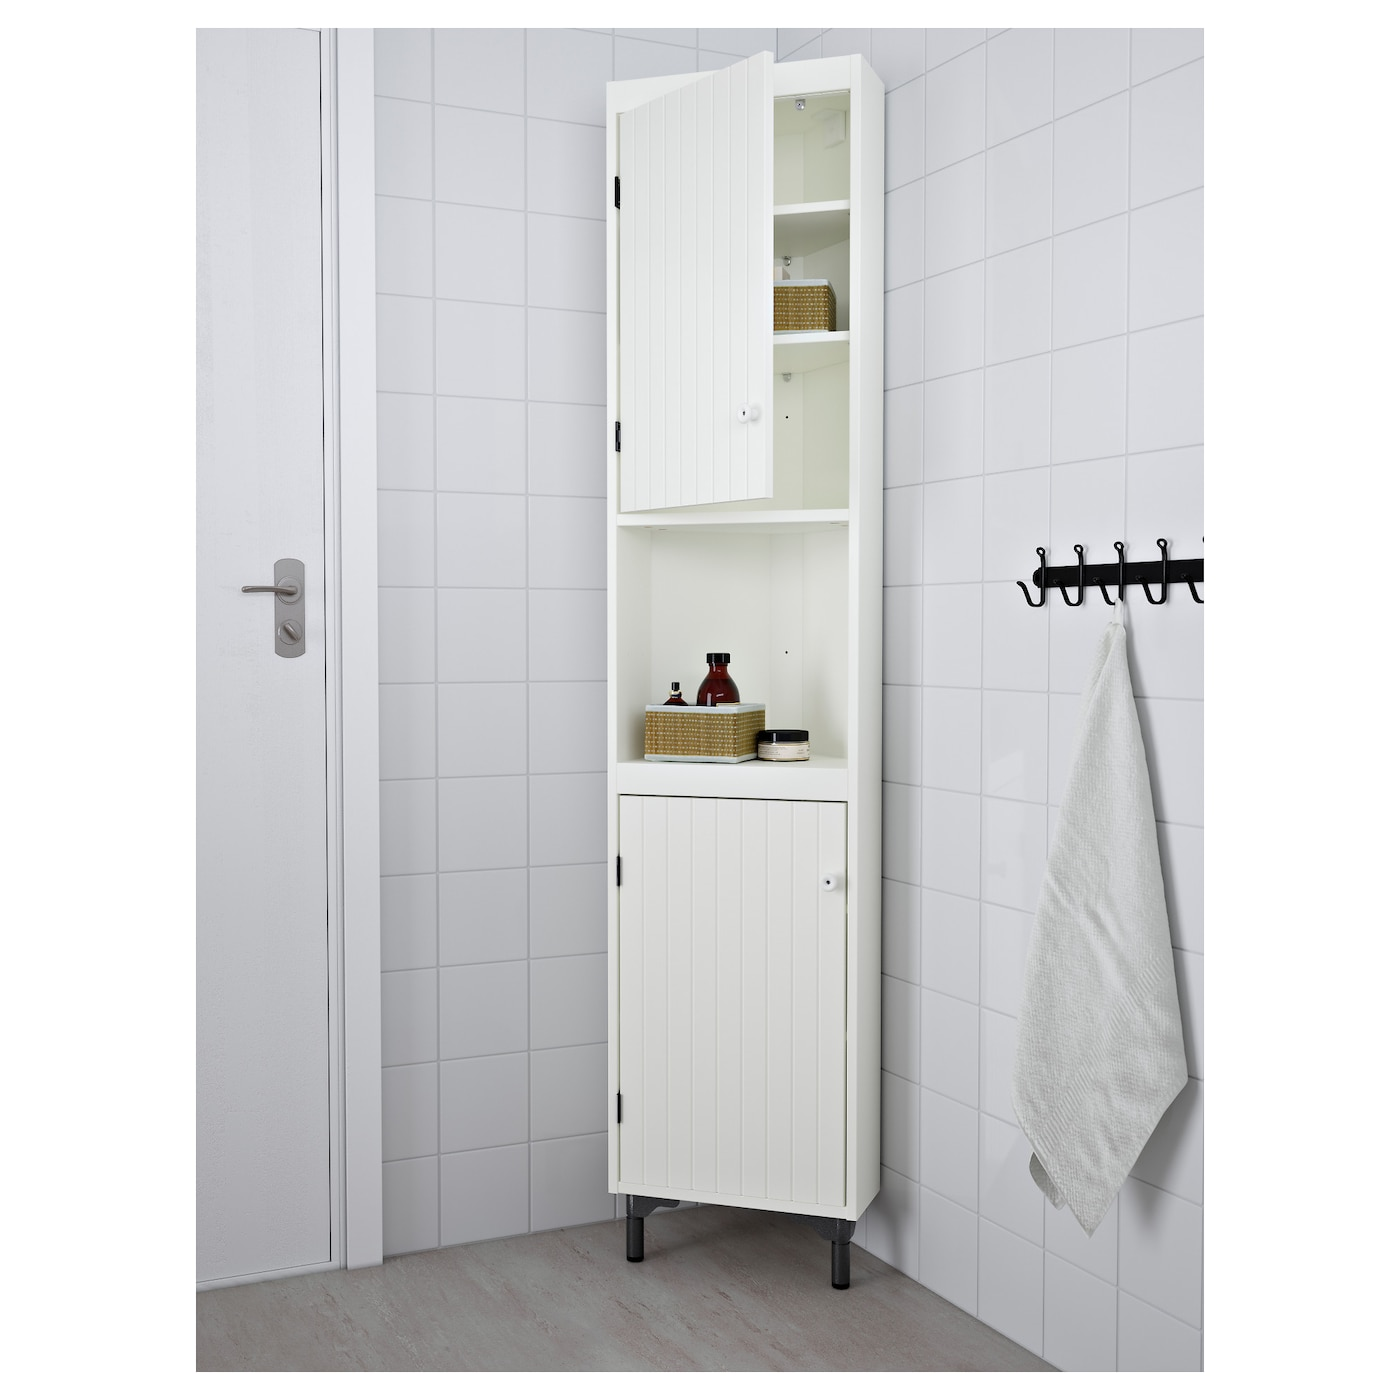 IKEA SILVERÅN corner unit You can mount the door to open from the right or left.